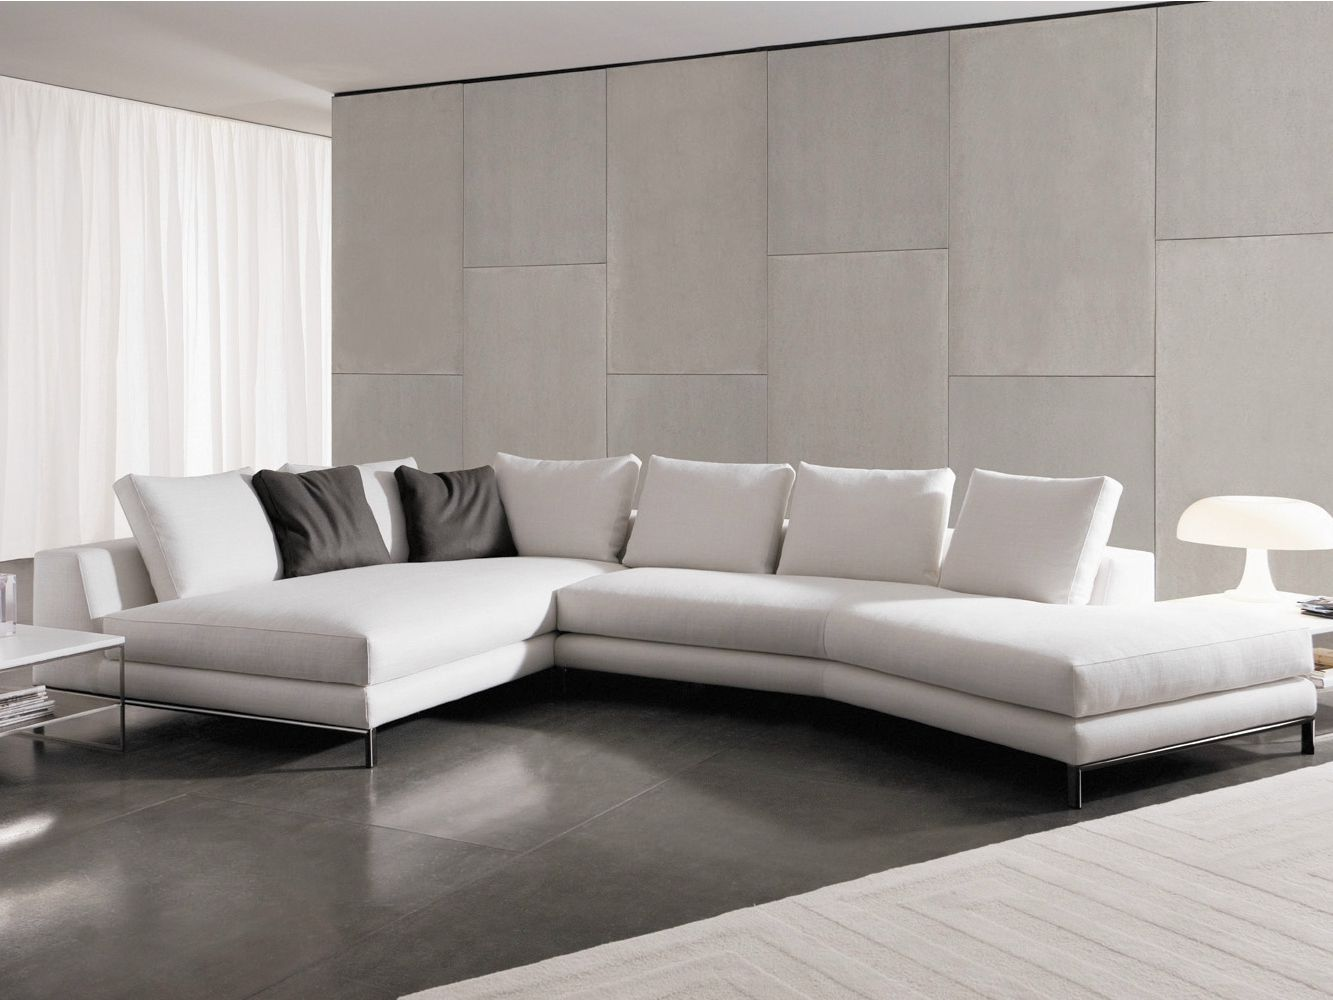 Divano Hamilton Island Minotti Sectional Upholstered Fabric Sofa Hamilton Islands